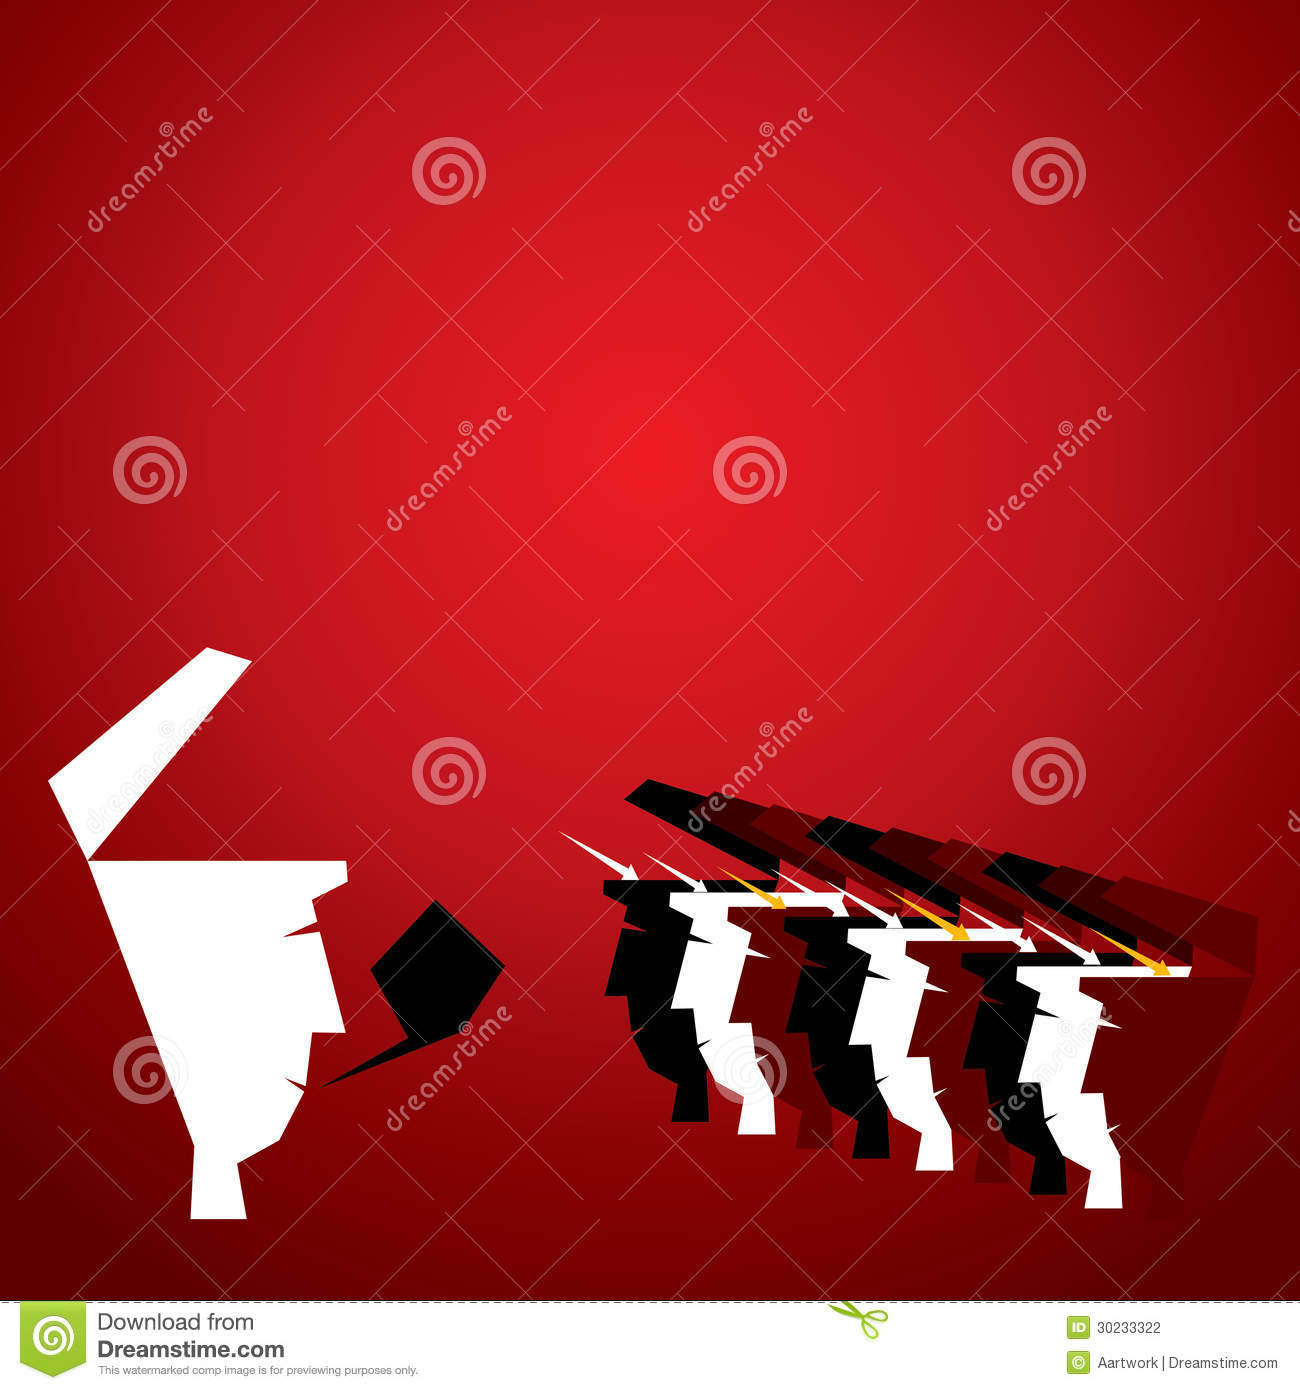 One To Many Communication Concept Stock Vector Illustration Of